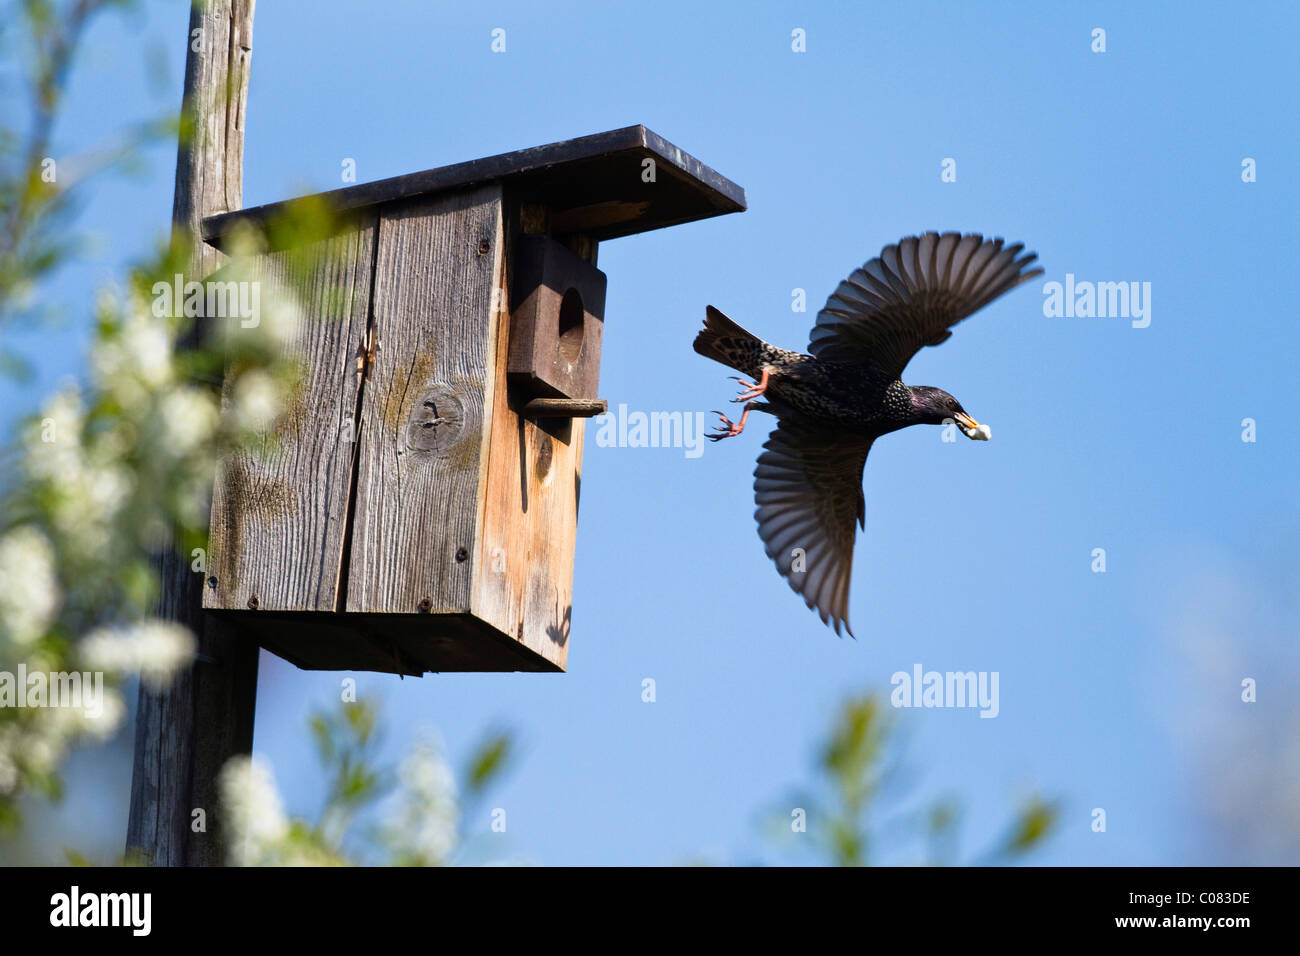 Starling (Sturnus vulgaris) carrying faeces away from a nest box in a garden, Bavaria, Germany, Europe - Stock Image